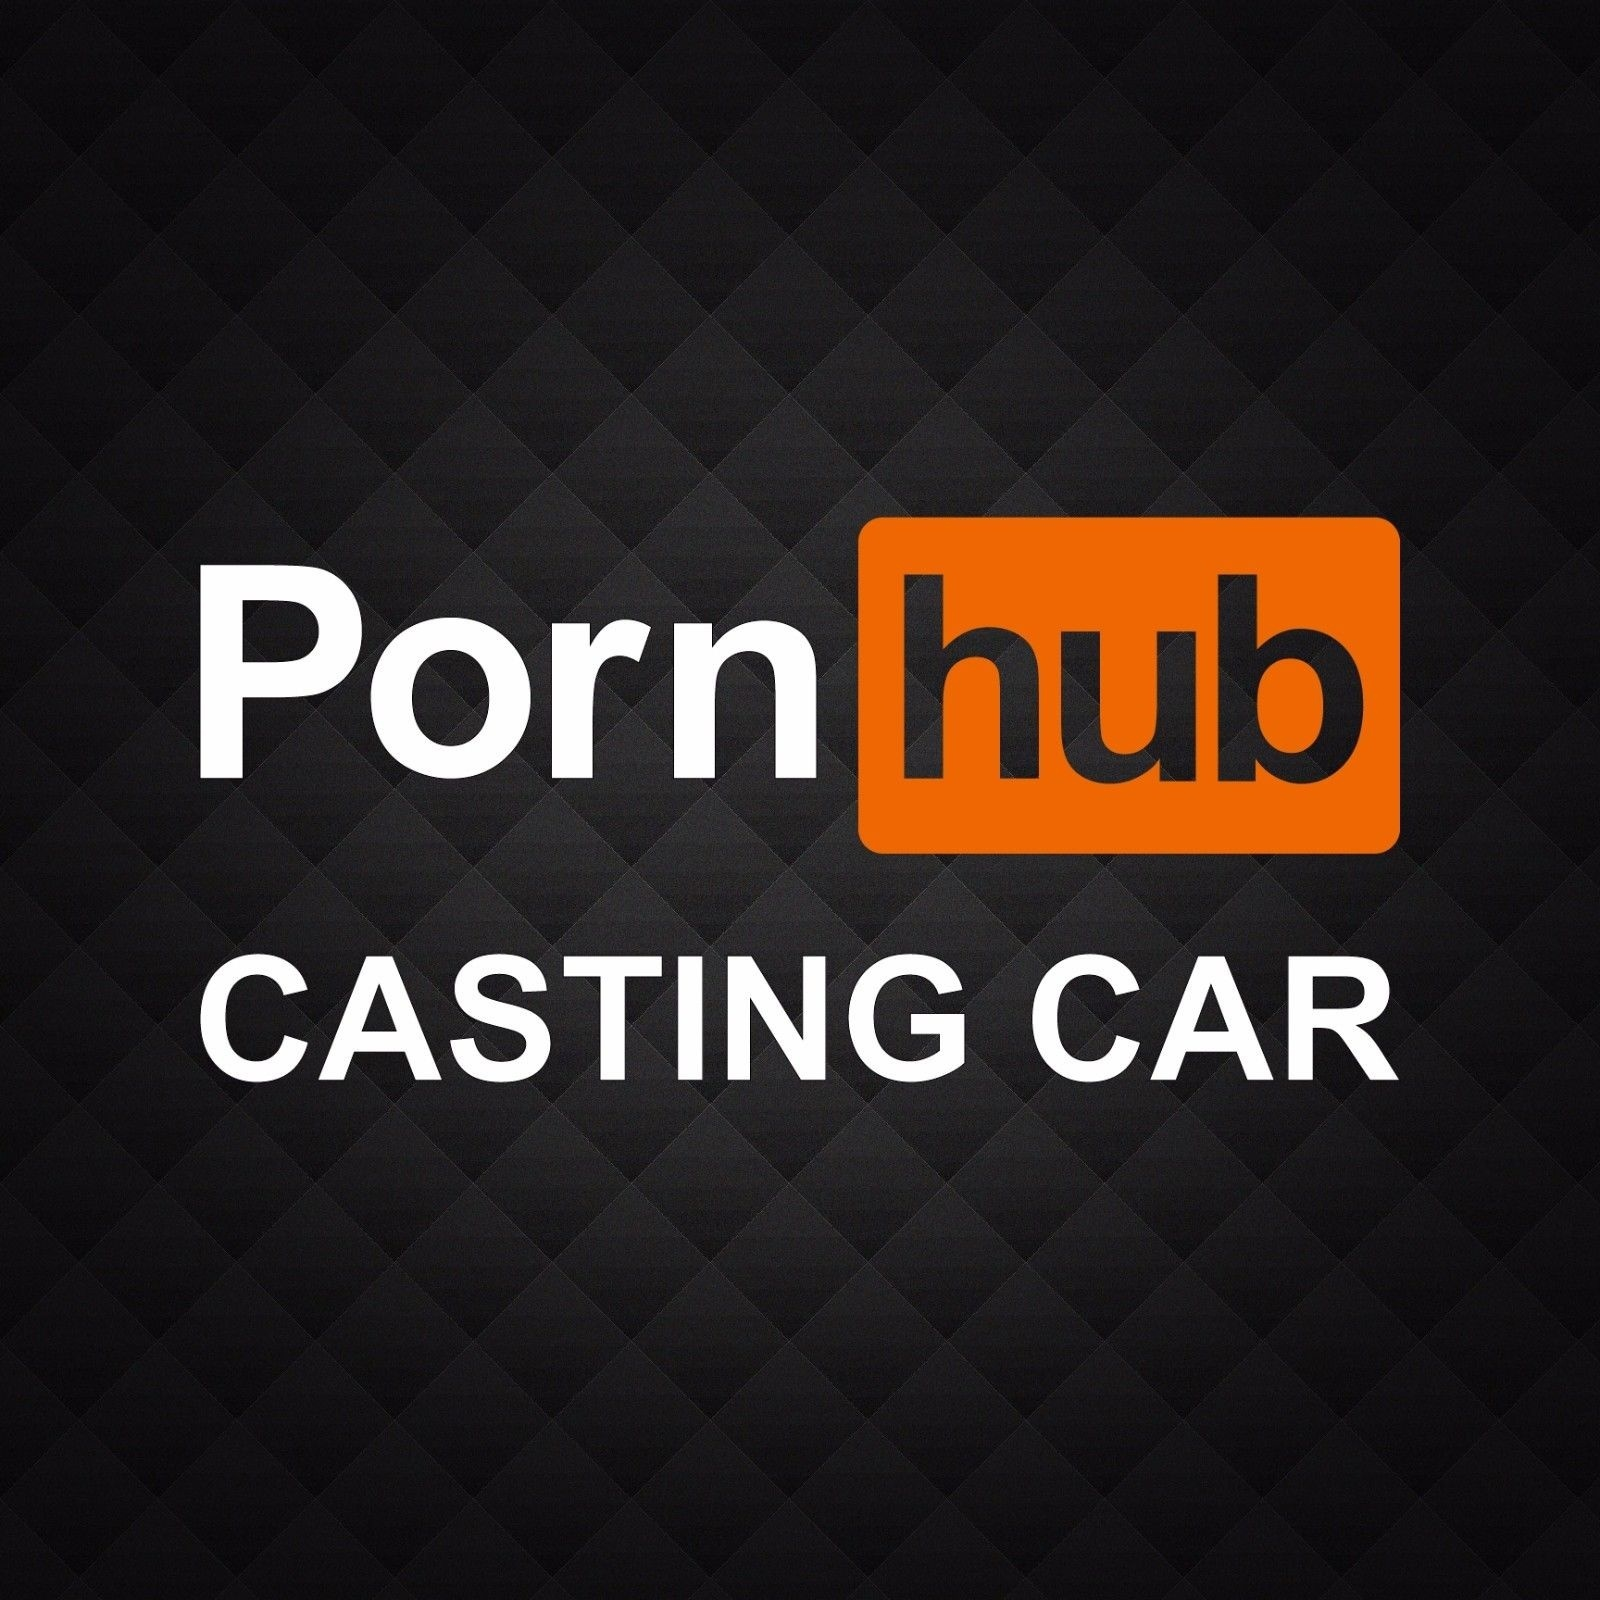 Porn Hub Castingwindow Funny Adult Die Cut Vinyl Decal Sticker Cm In Stickers From Toys Hobbies On Aliexpress Com Alibaba Group